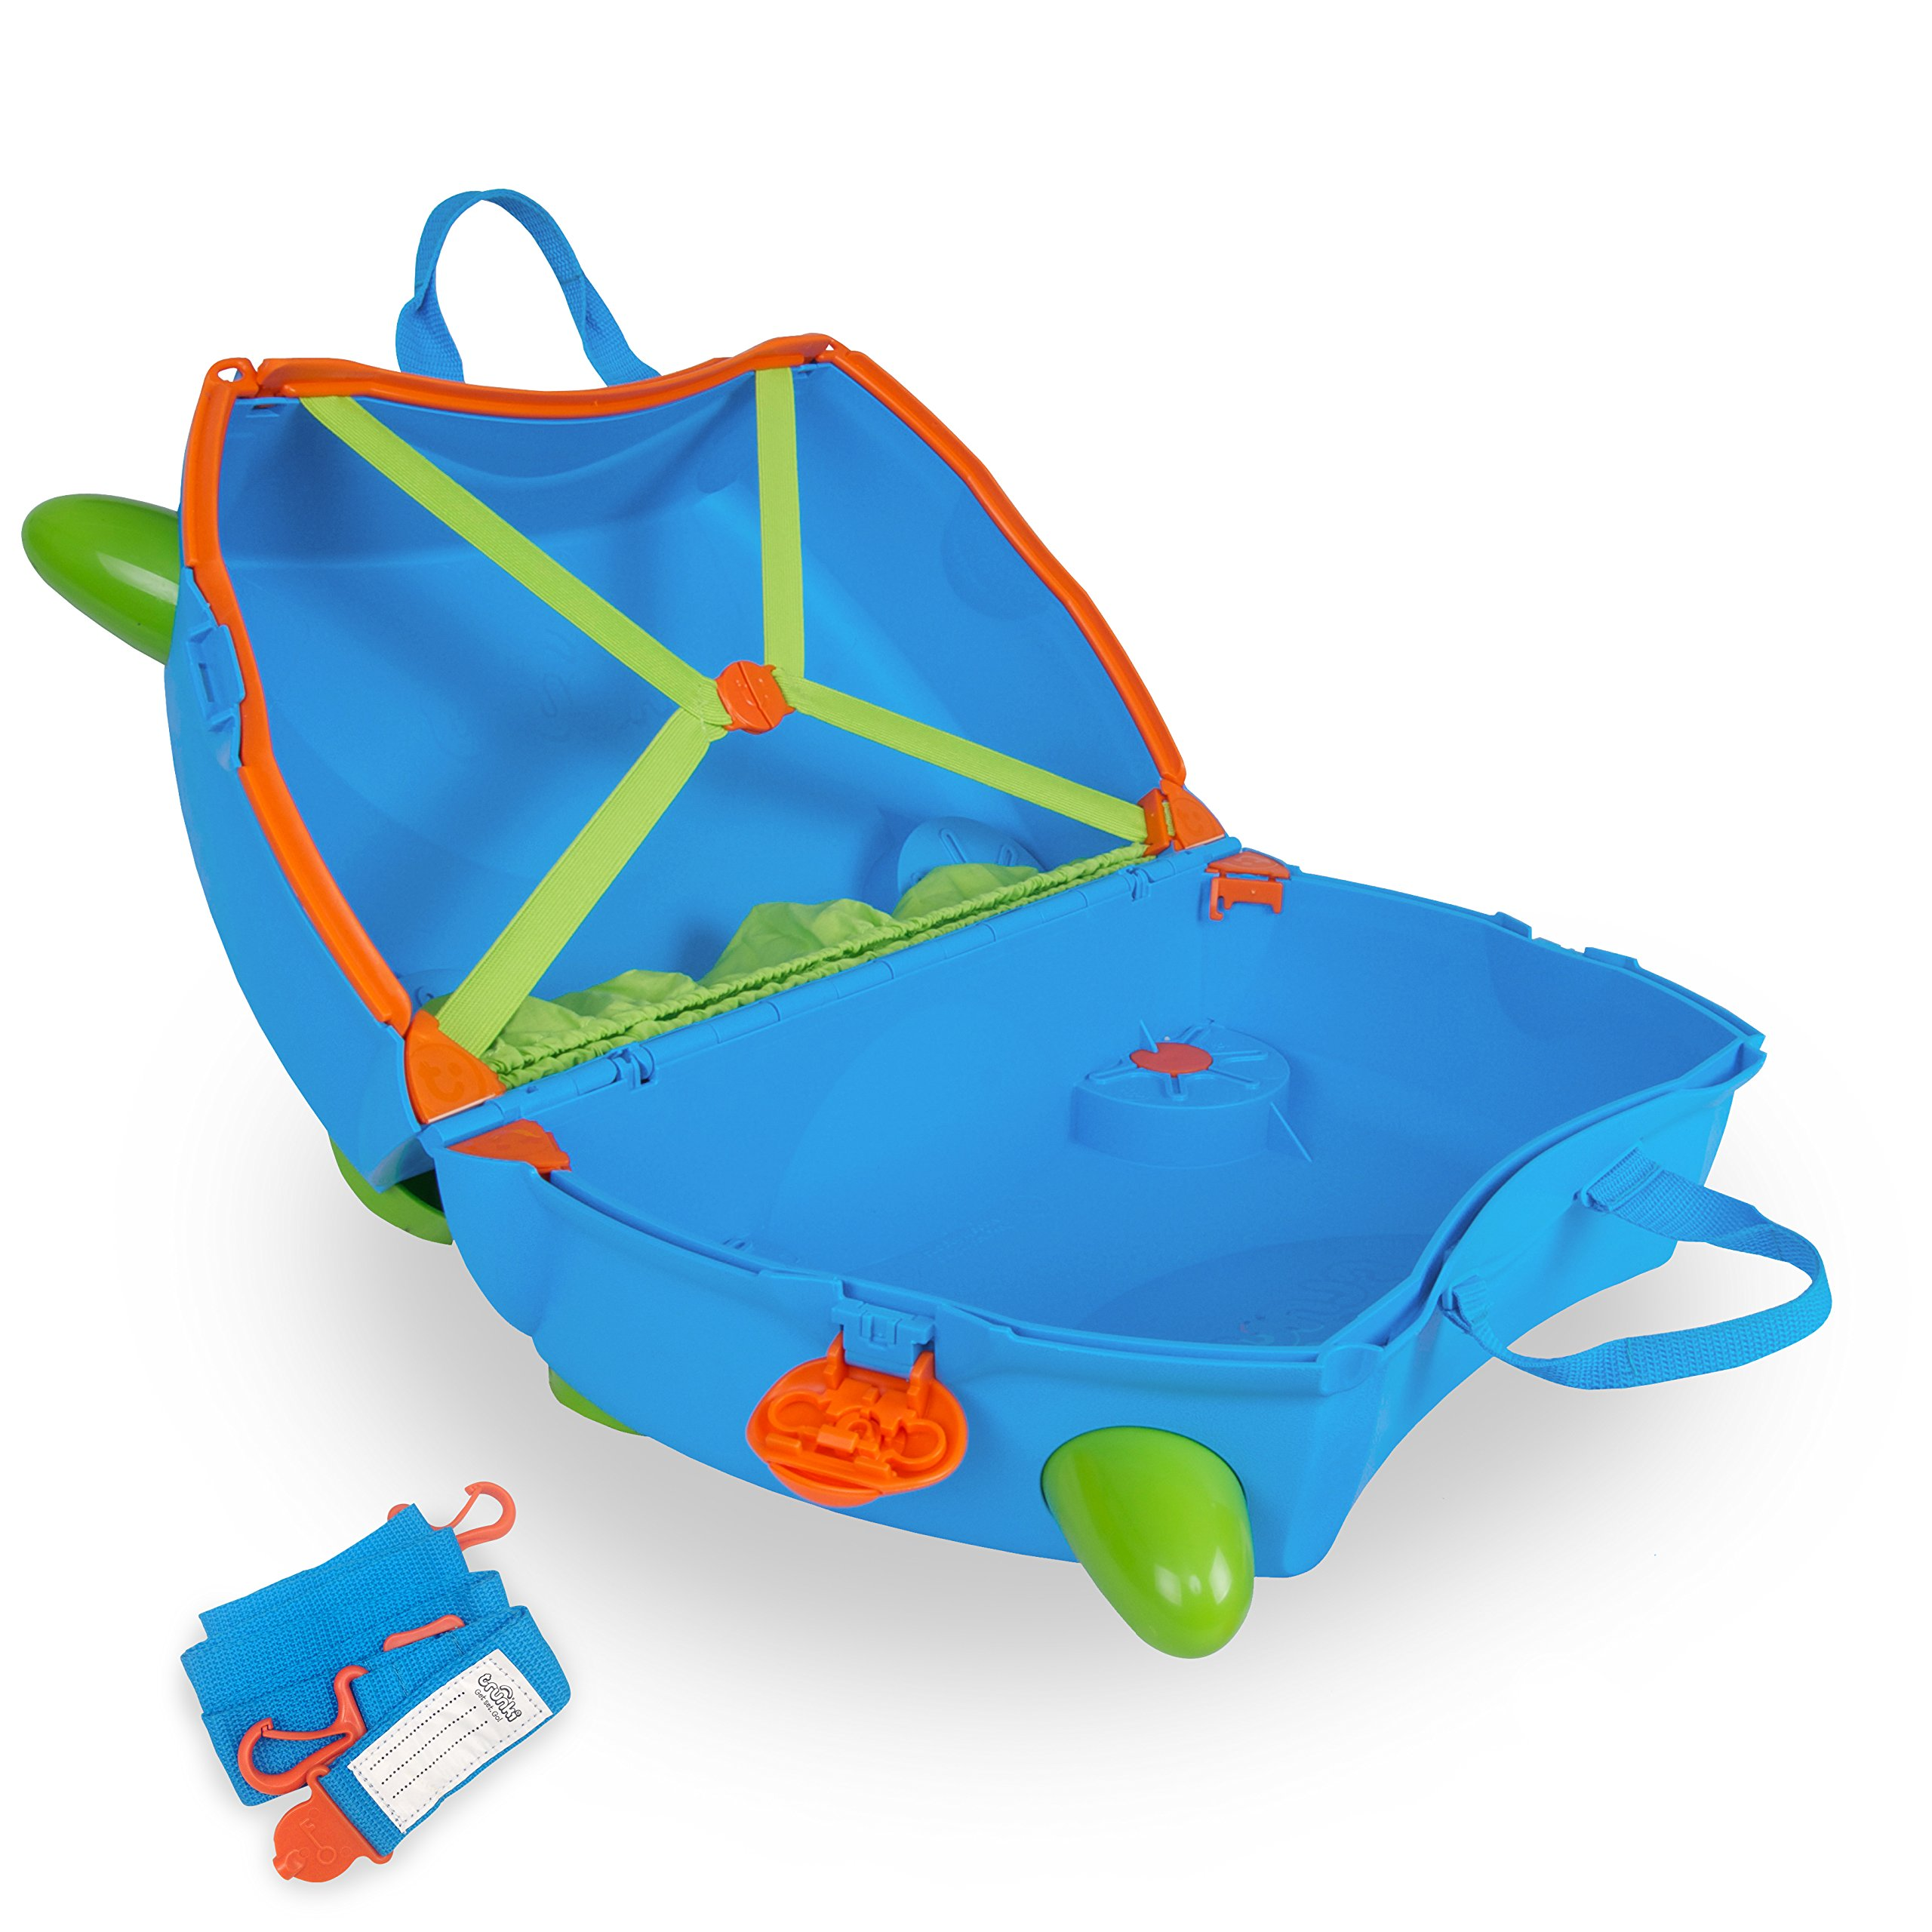 Trunki Original Kids Ride-On Suitcase and Carry-On Luggage - Terrance (Blue) by Trunki (Image #4)